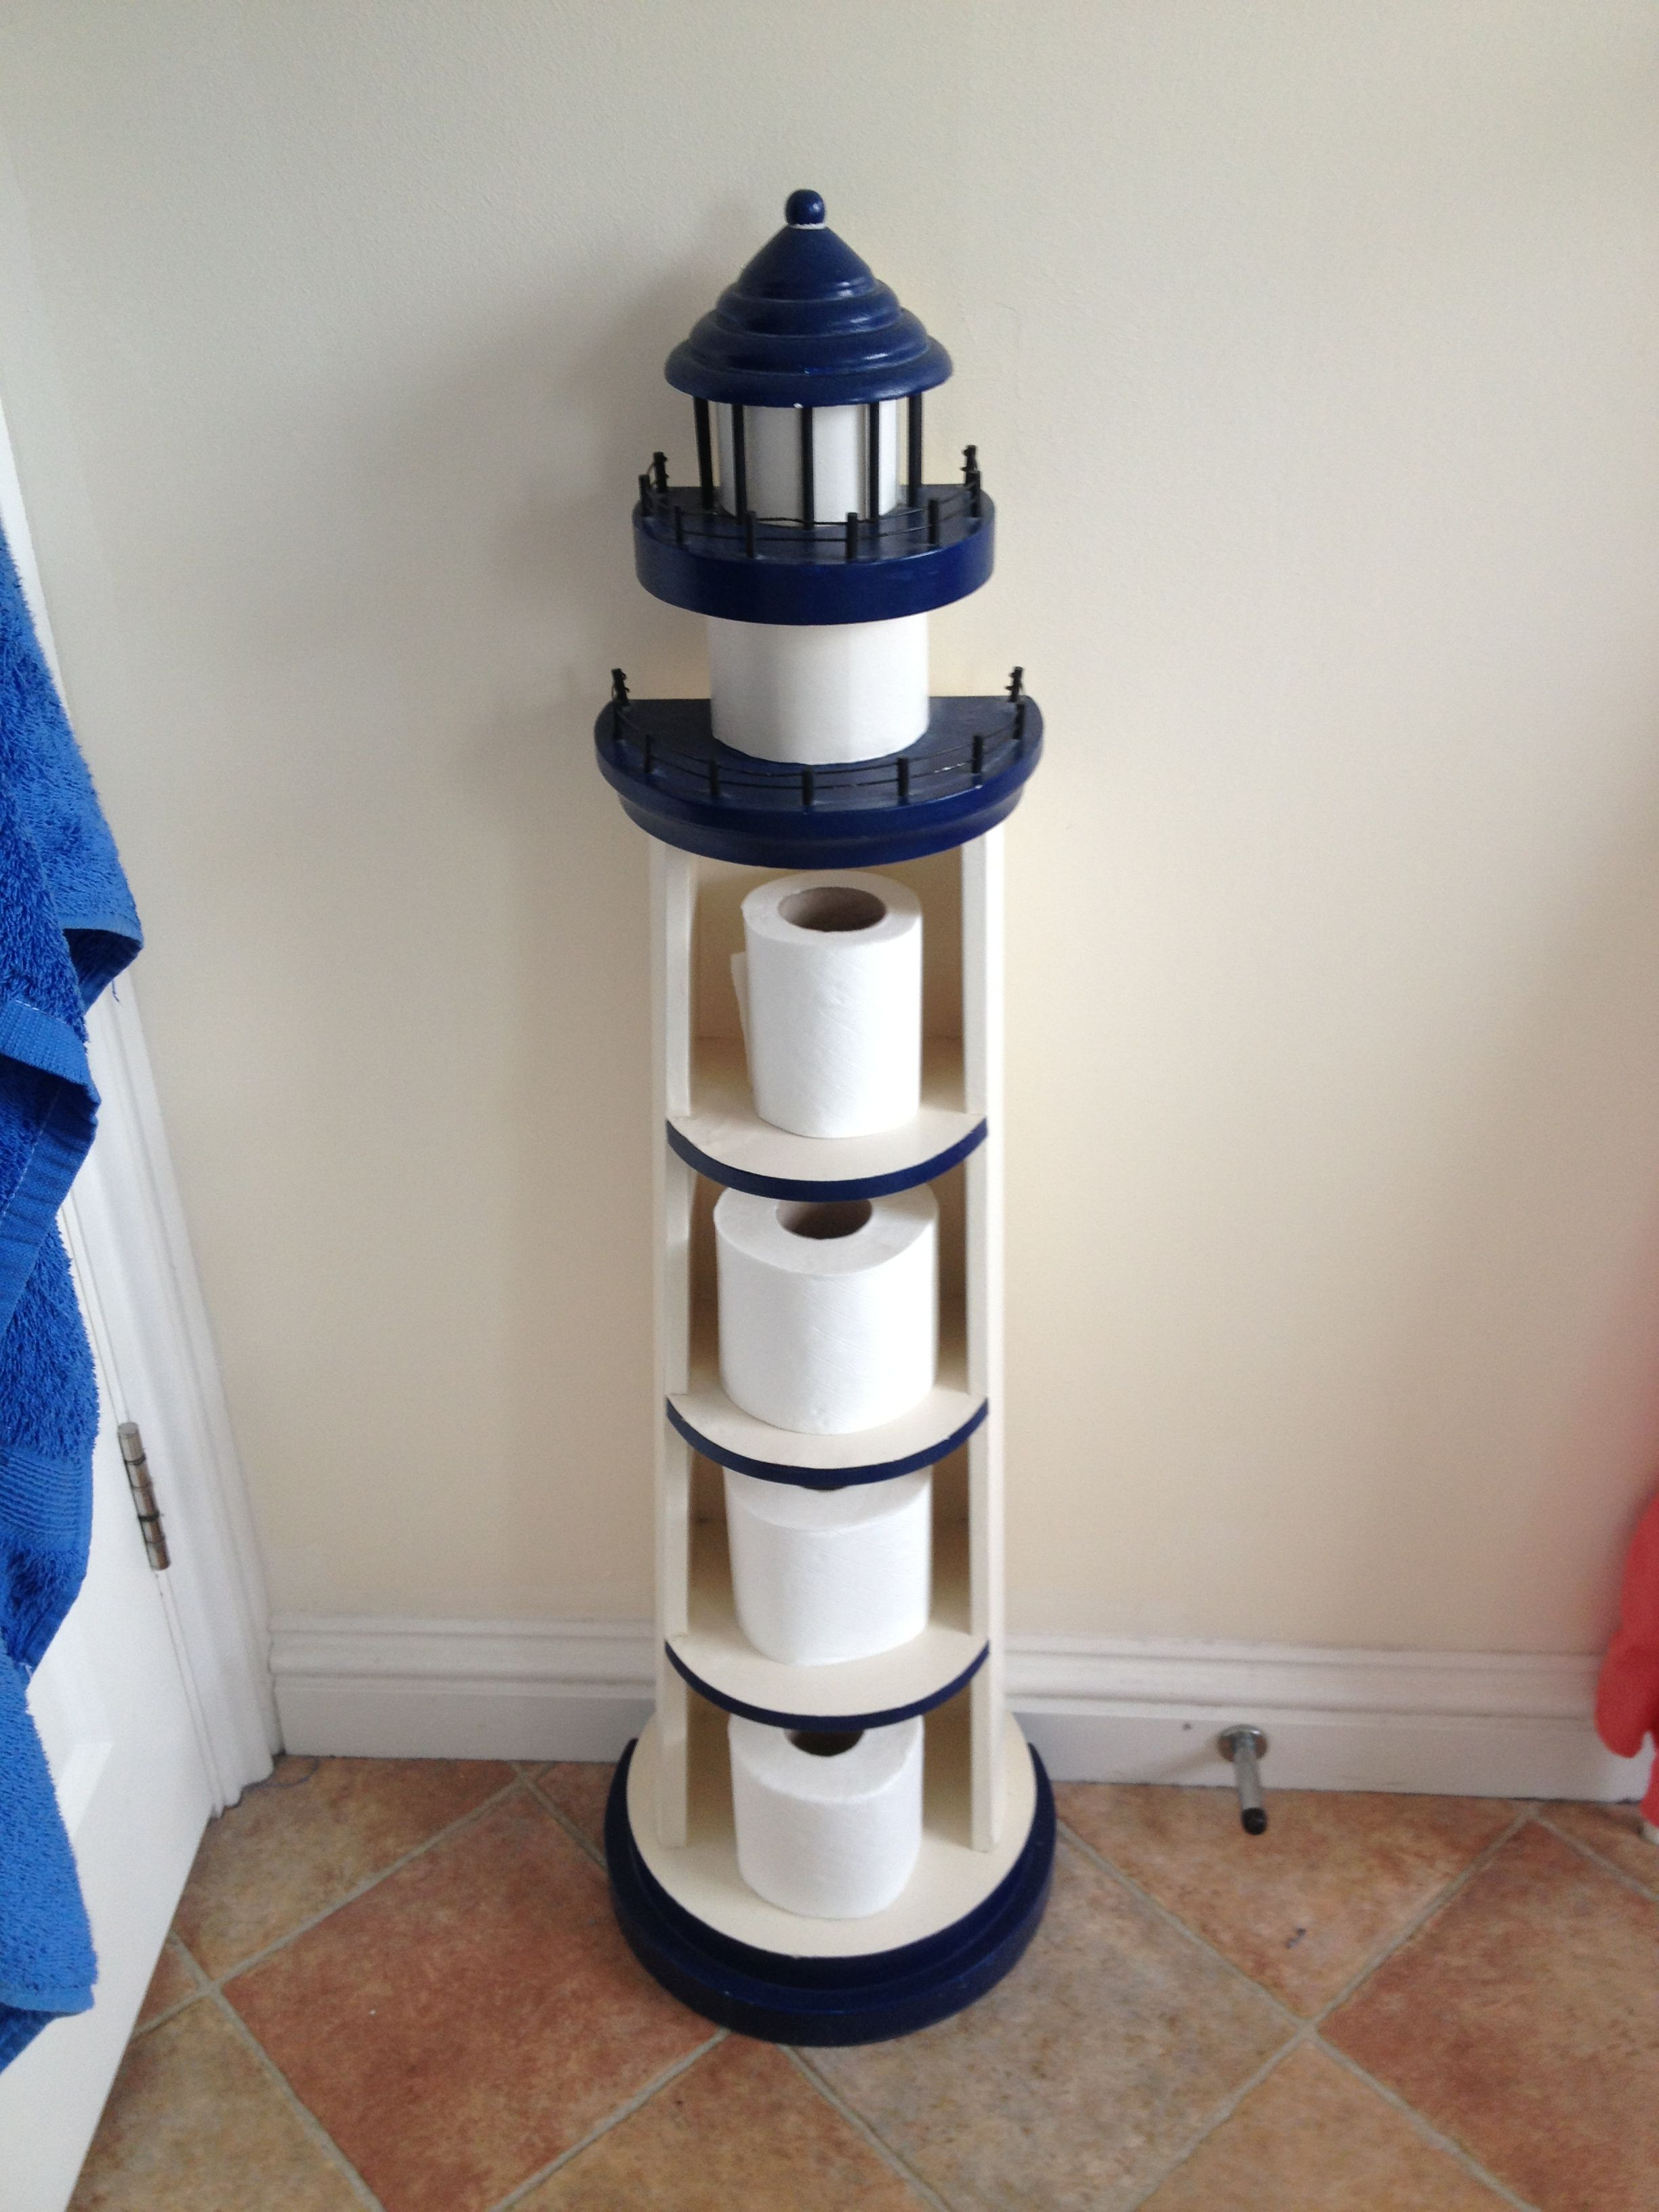 lovely idea single post toilet paper holder. Lighthouse toilet paper roll holder  What a fun idea Tried to find source